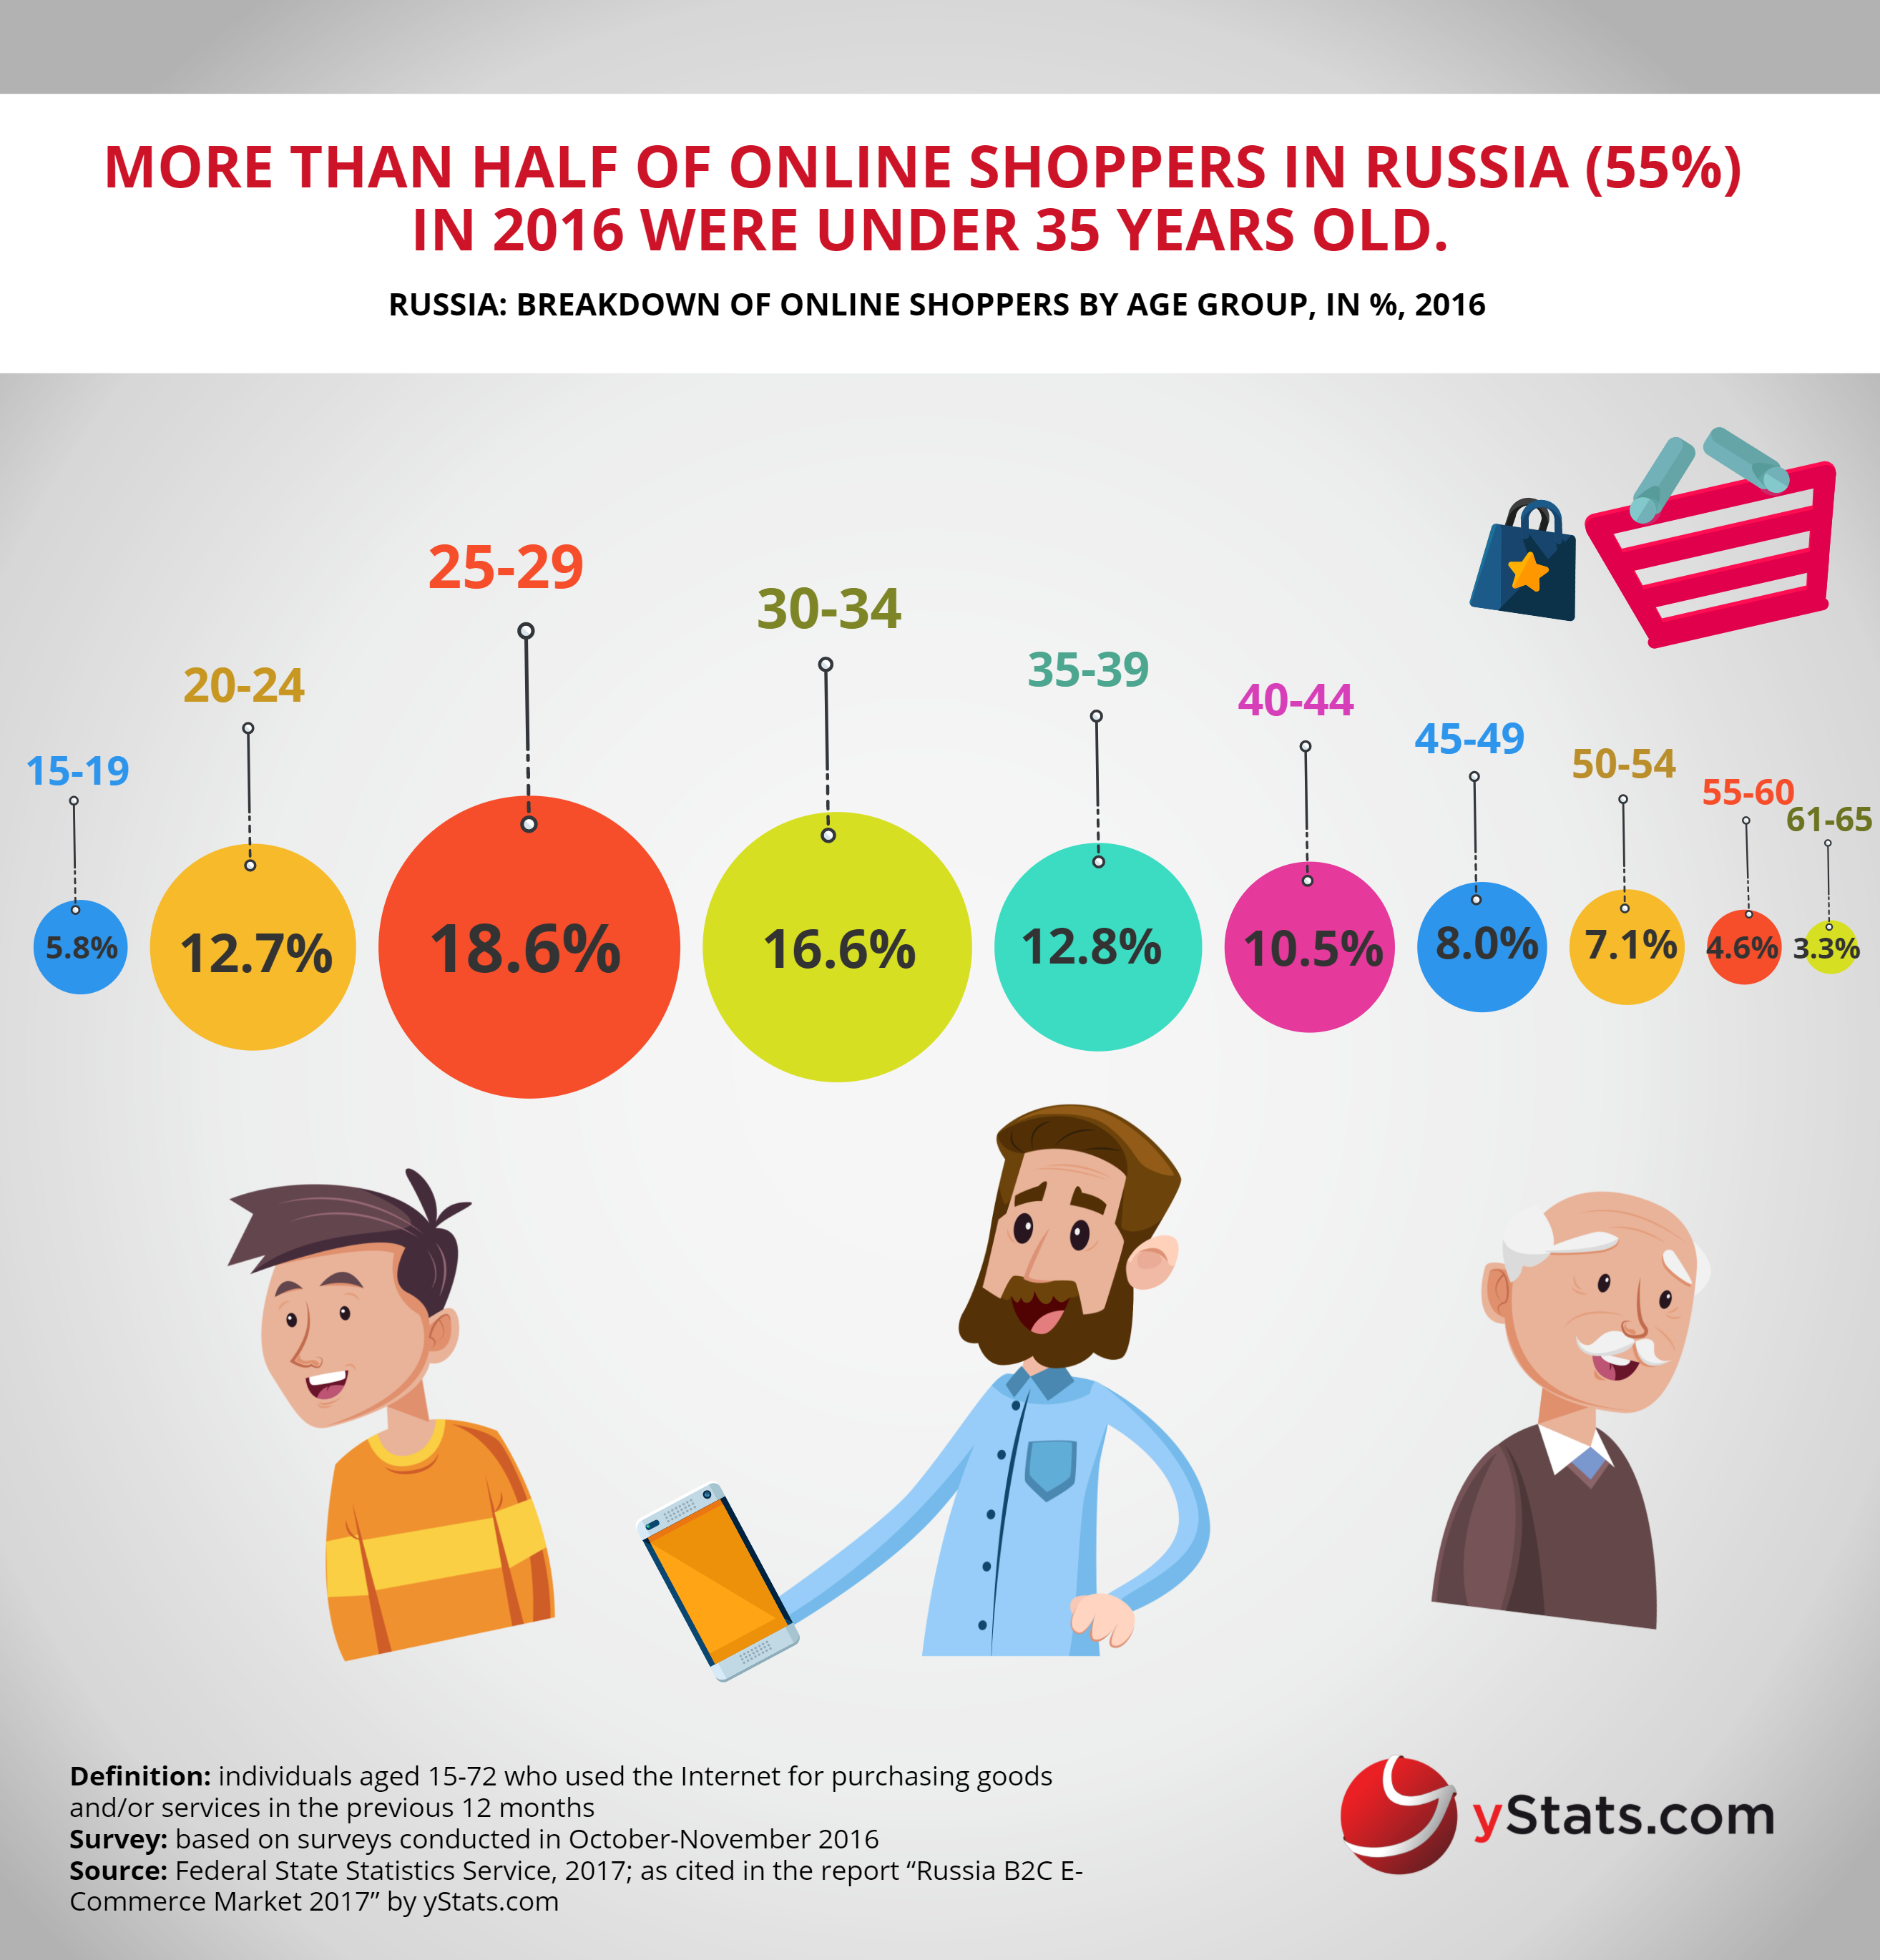 online shopper by age groups in russia